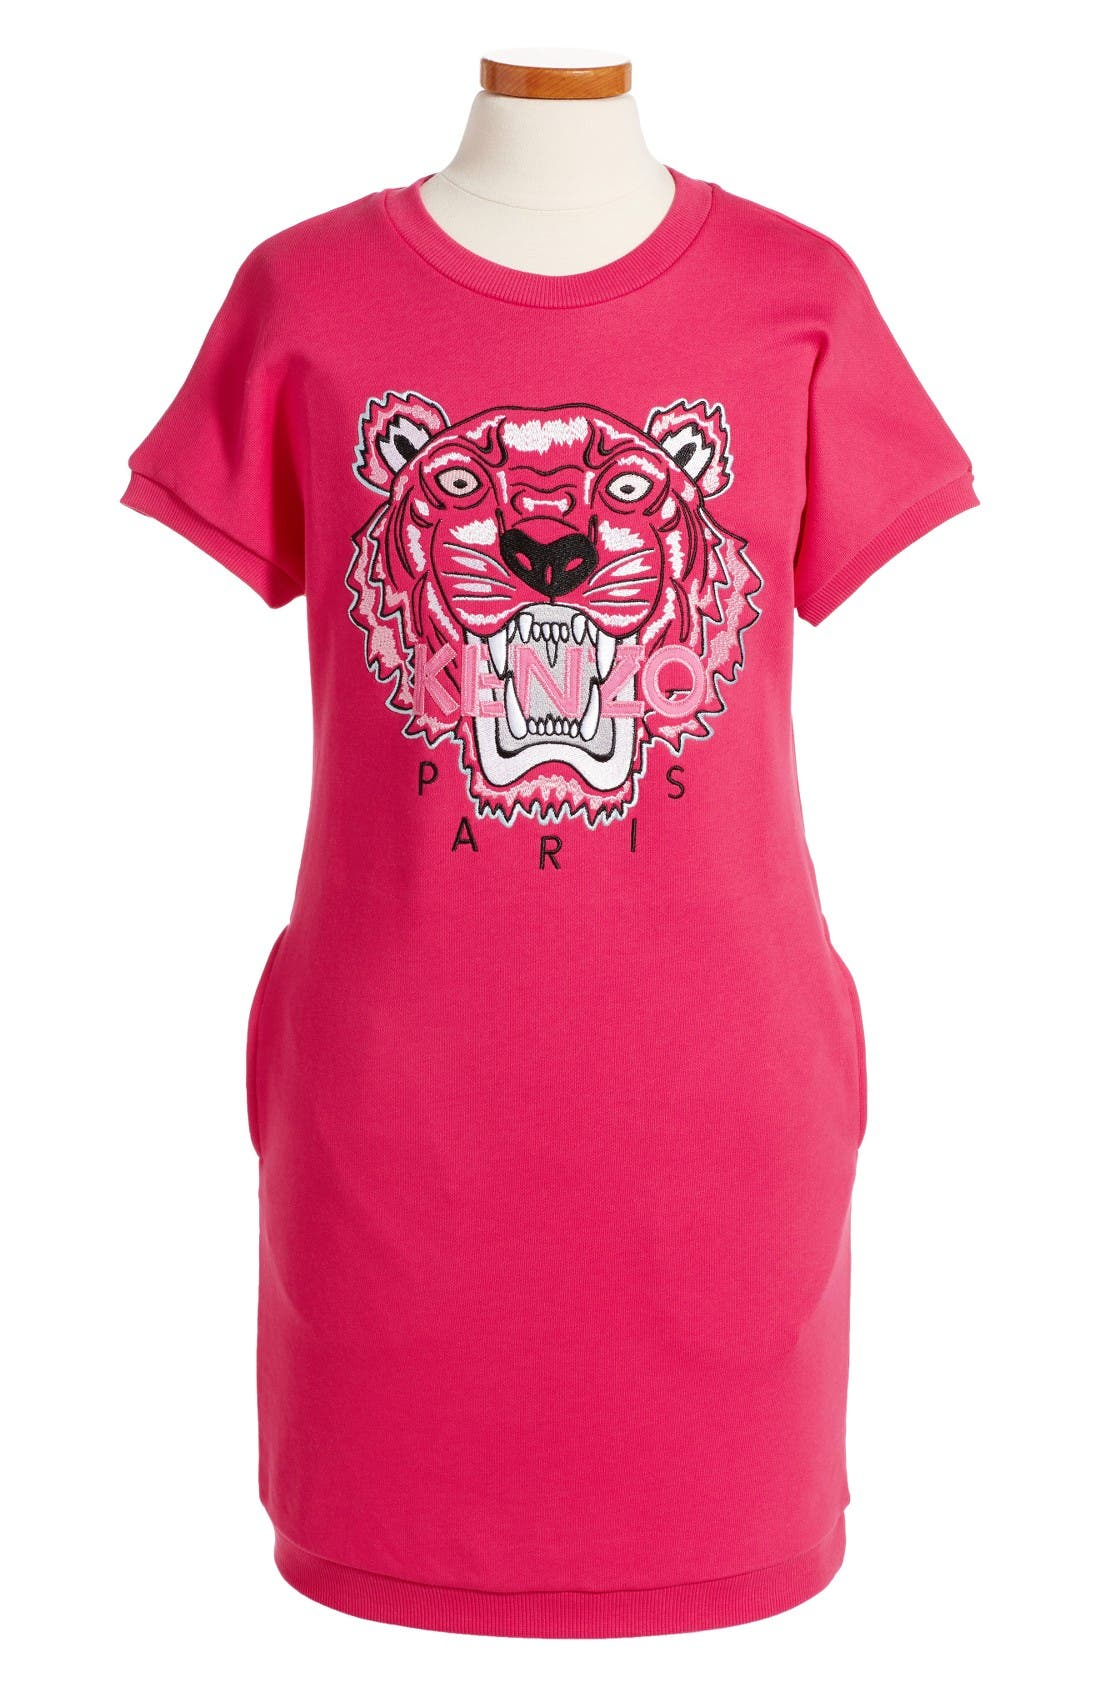 Embroidered Tiger Sweatshirt Dress,                             Main thumbnail 1, color,                             Fuchsia